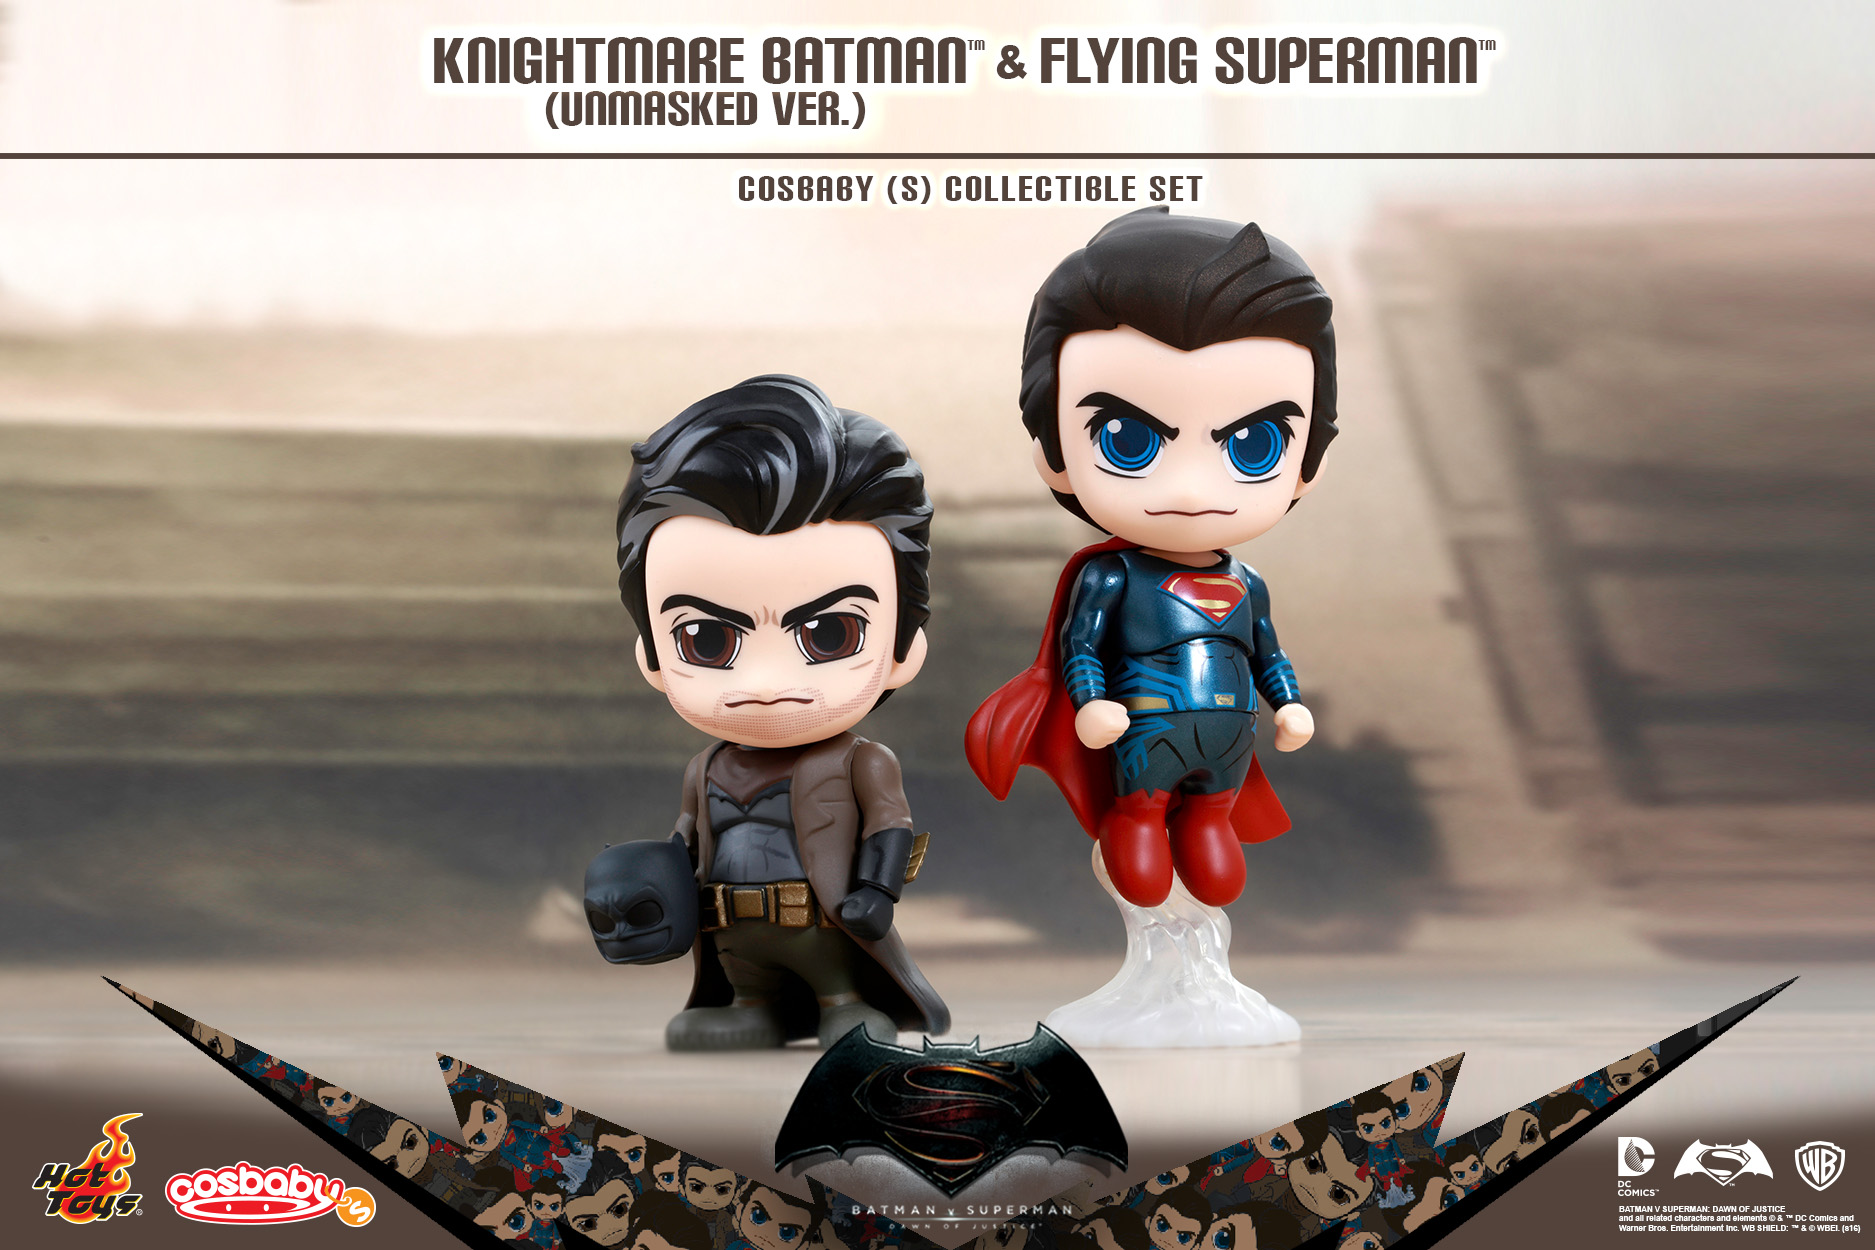 Batman v Superman: Dawn of Justice – Knightmare Batman (Unmasked Version) and Flying Superman Cosbaby Collectible Set